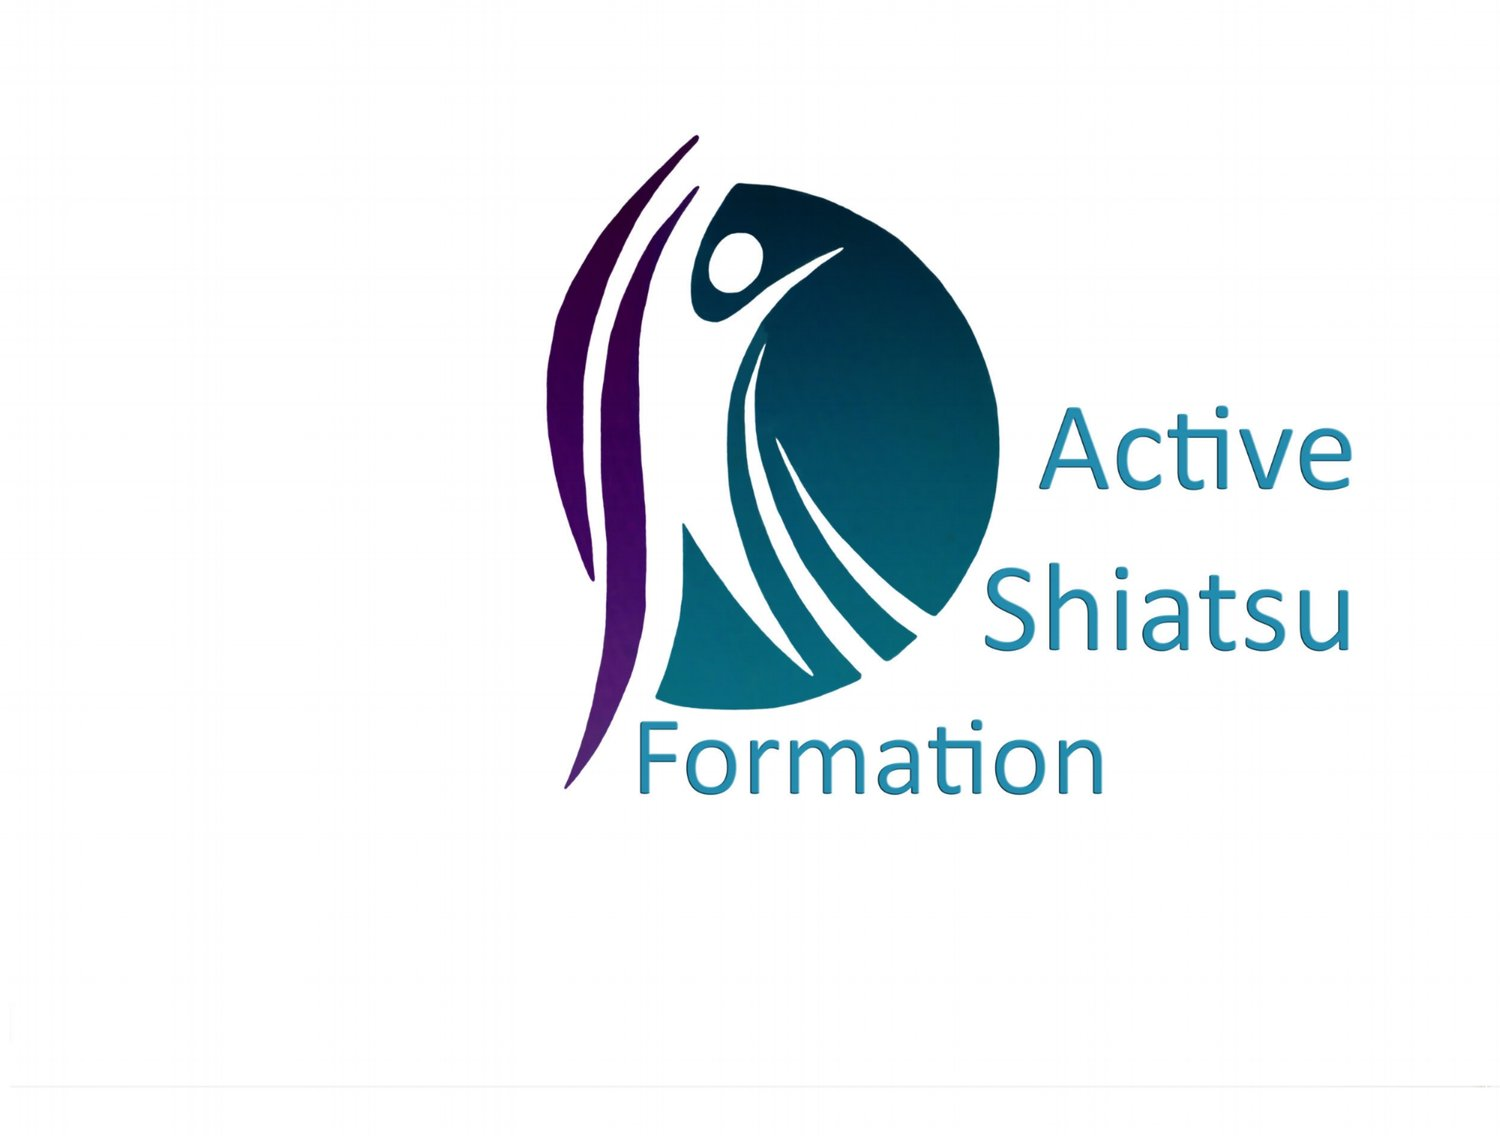 Association Active Shiatsu